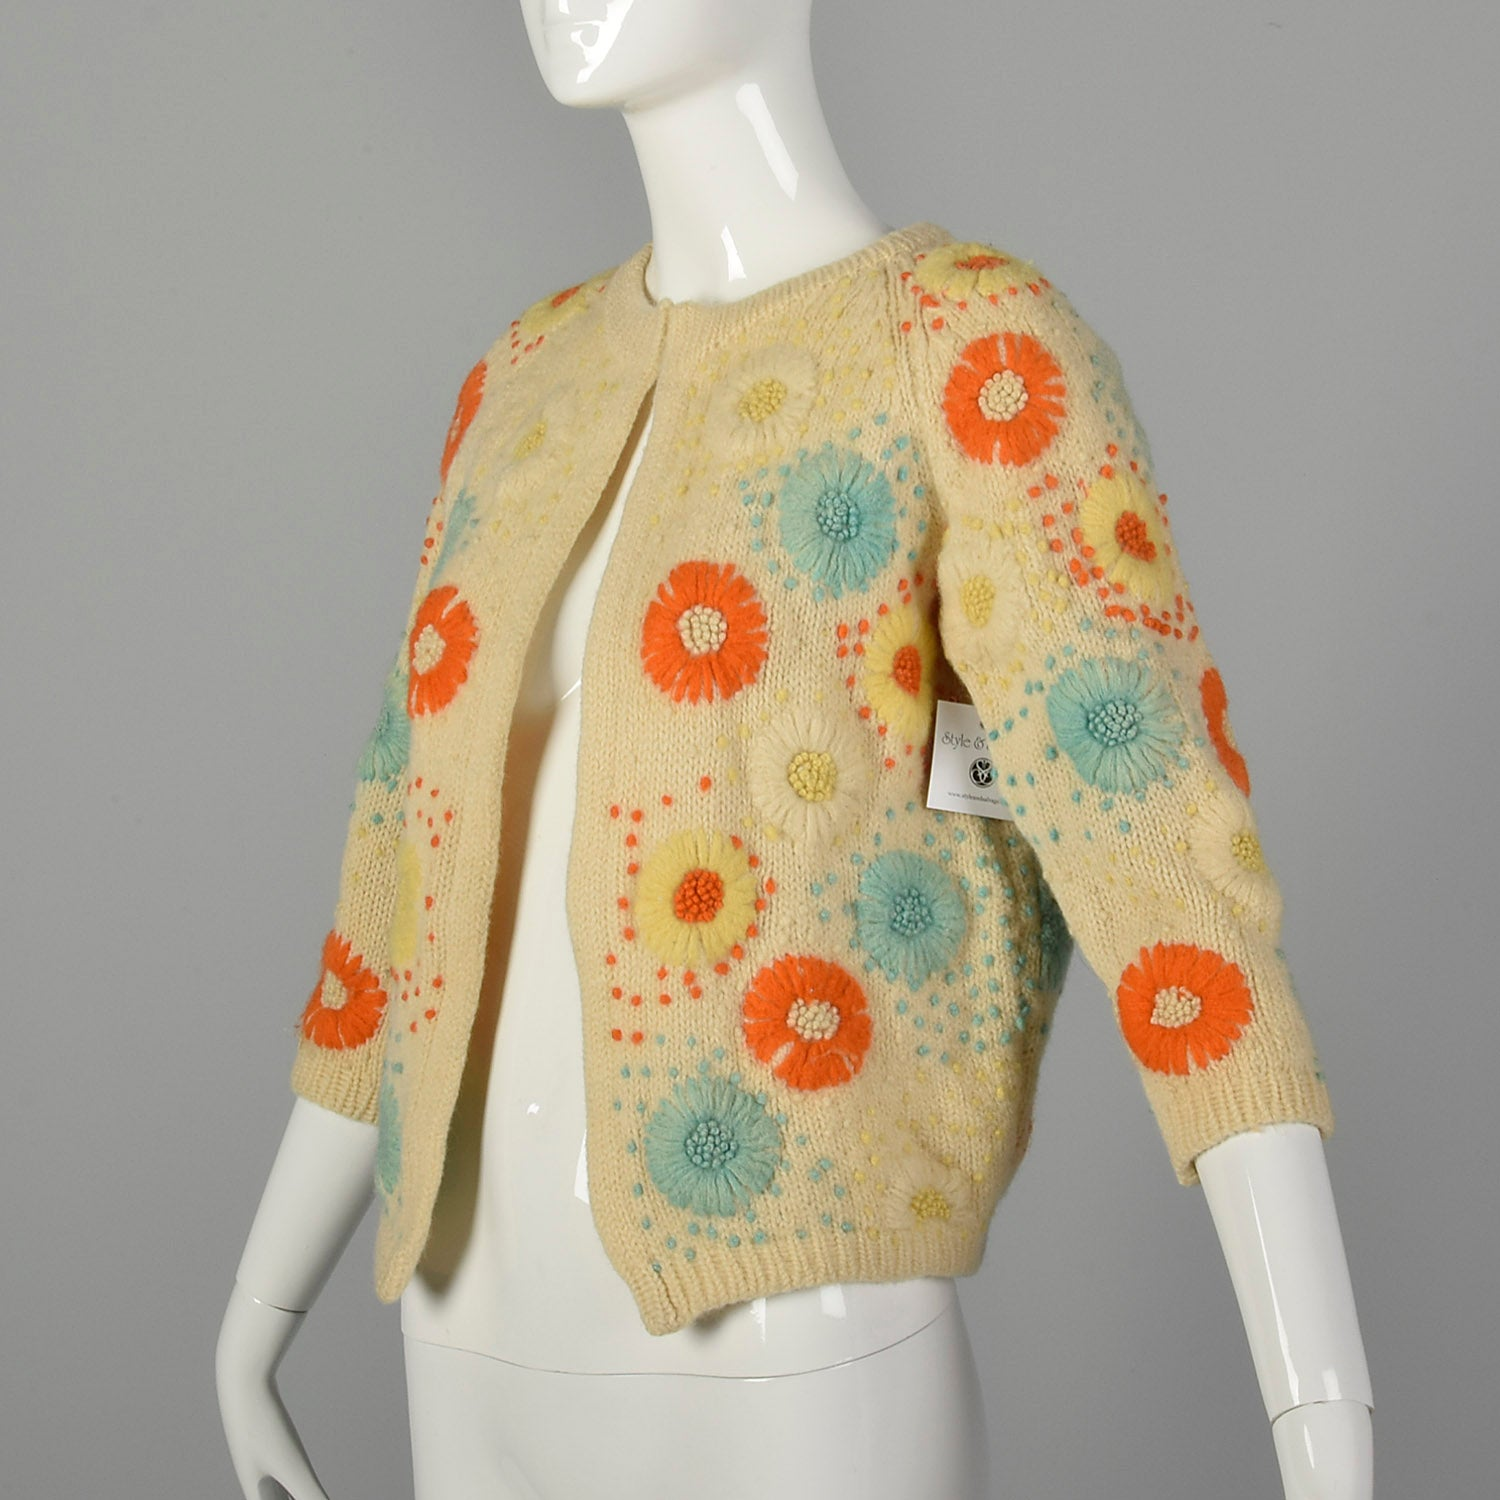 Small 1960s Boho Cardigan Cream Sweater with Multi-Color Floral Embroidery